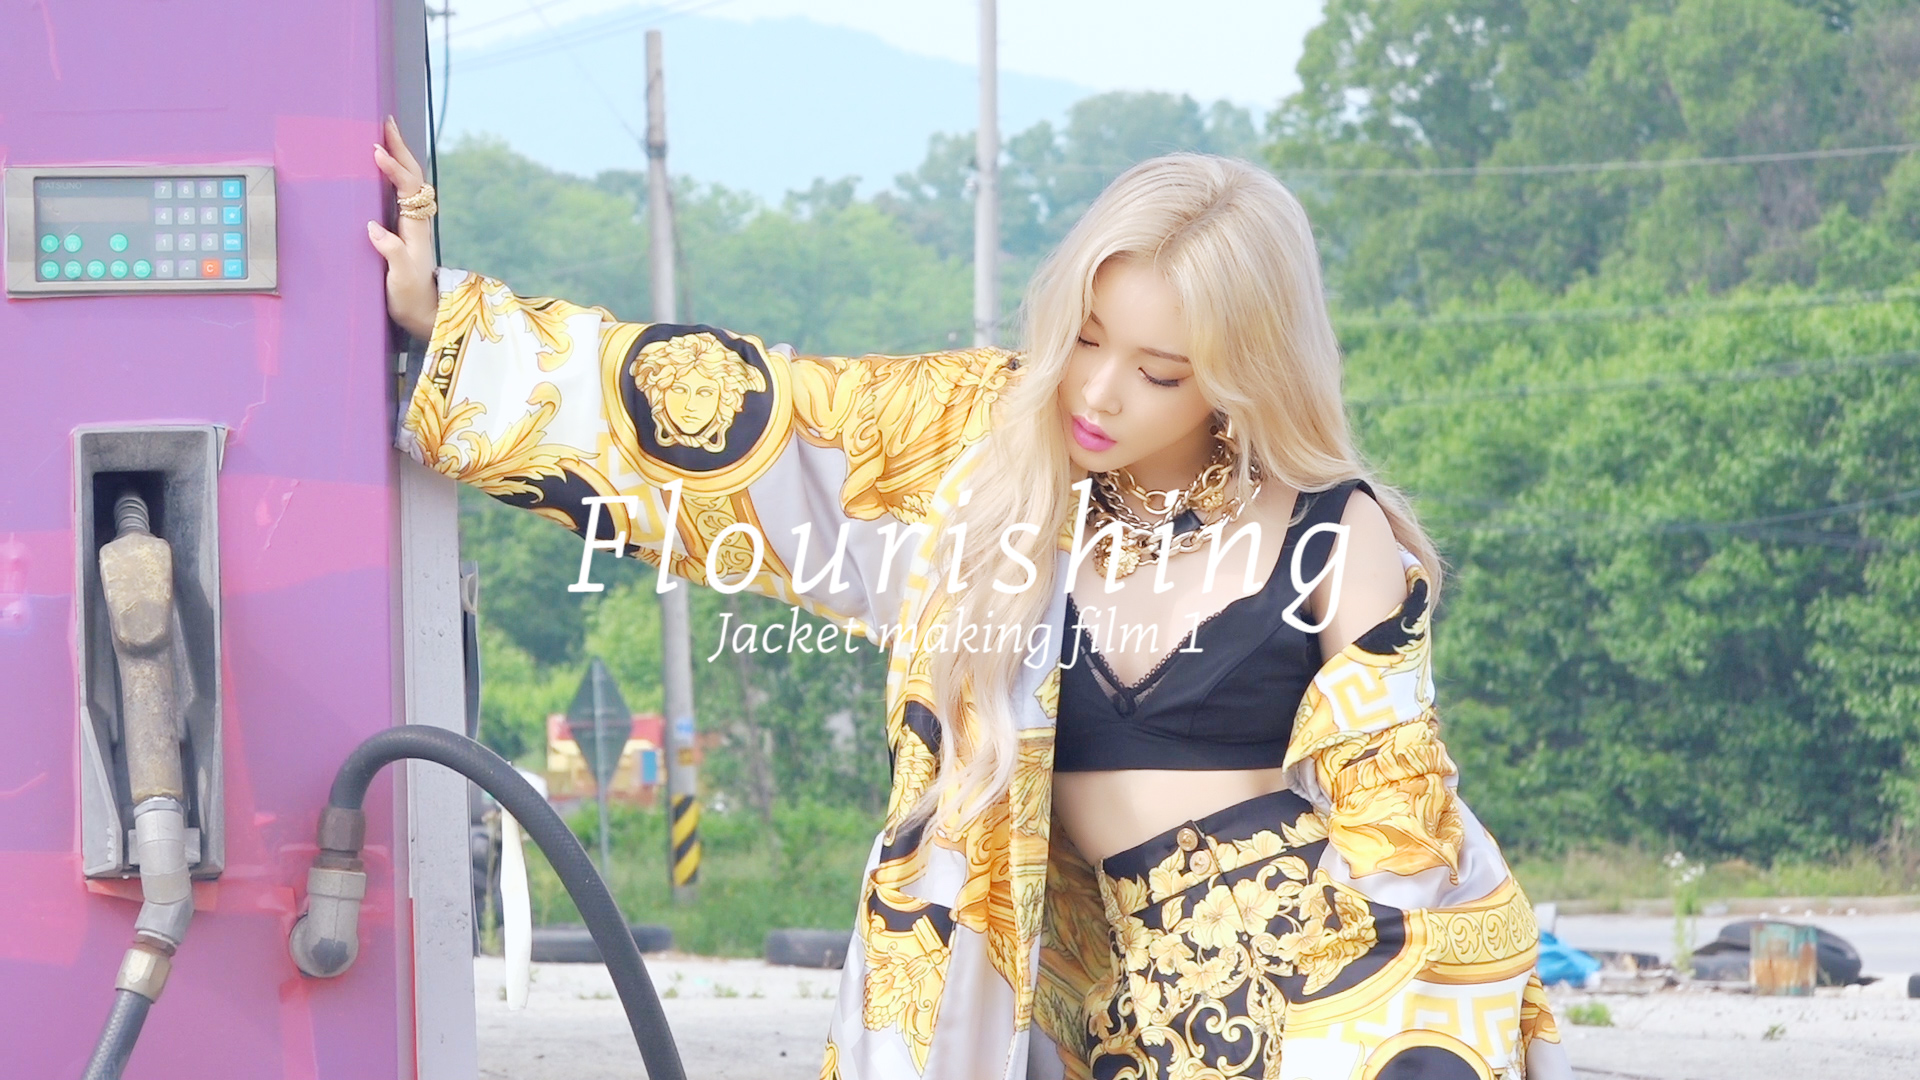 청하 (CHUNG HA) - 'Flourishing' Jacket Making Film 1